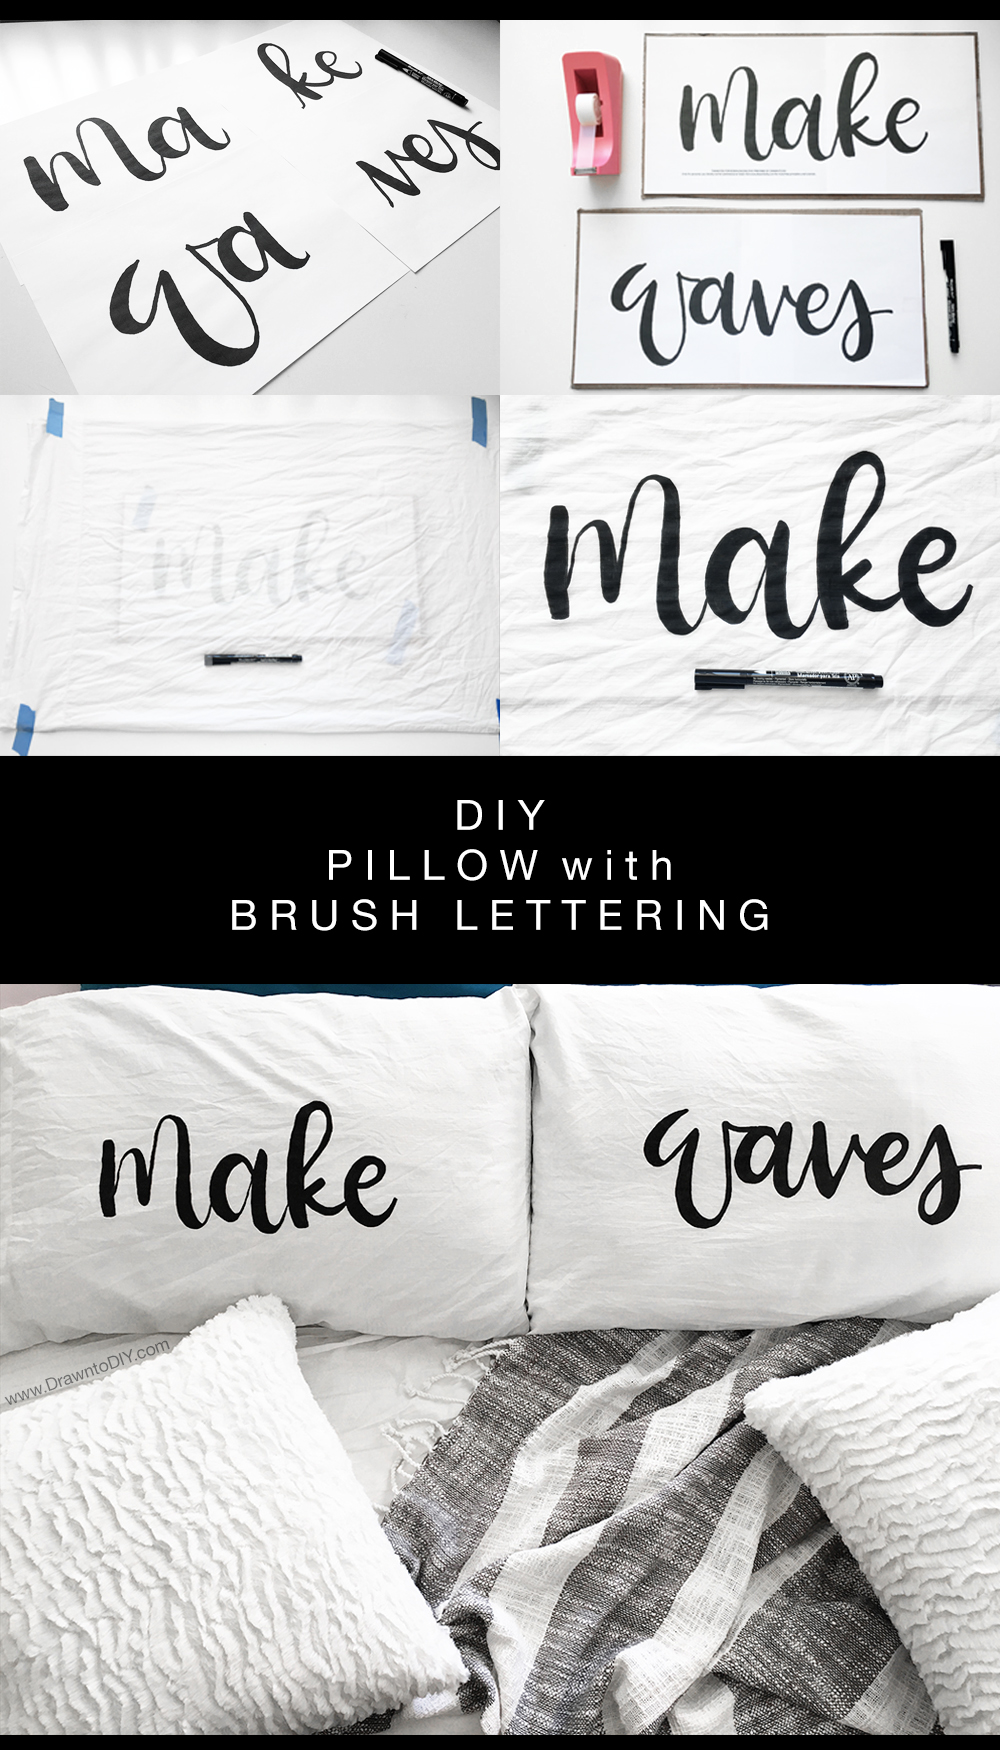 DIY Pillow with Brush Lettering by Drawn to DIY